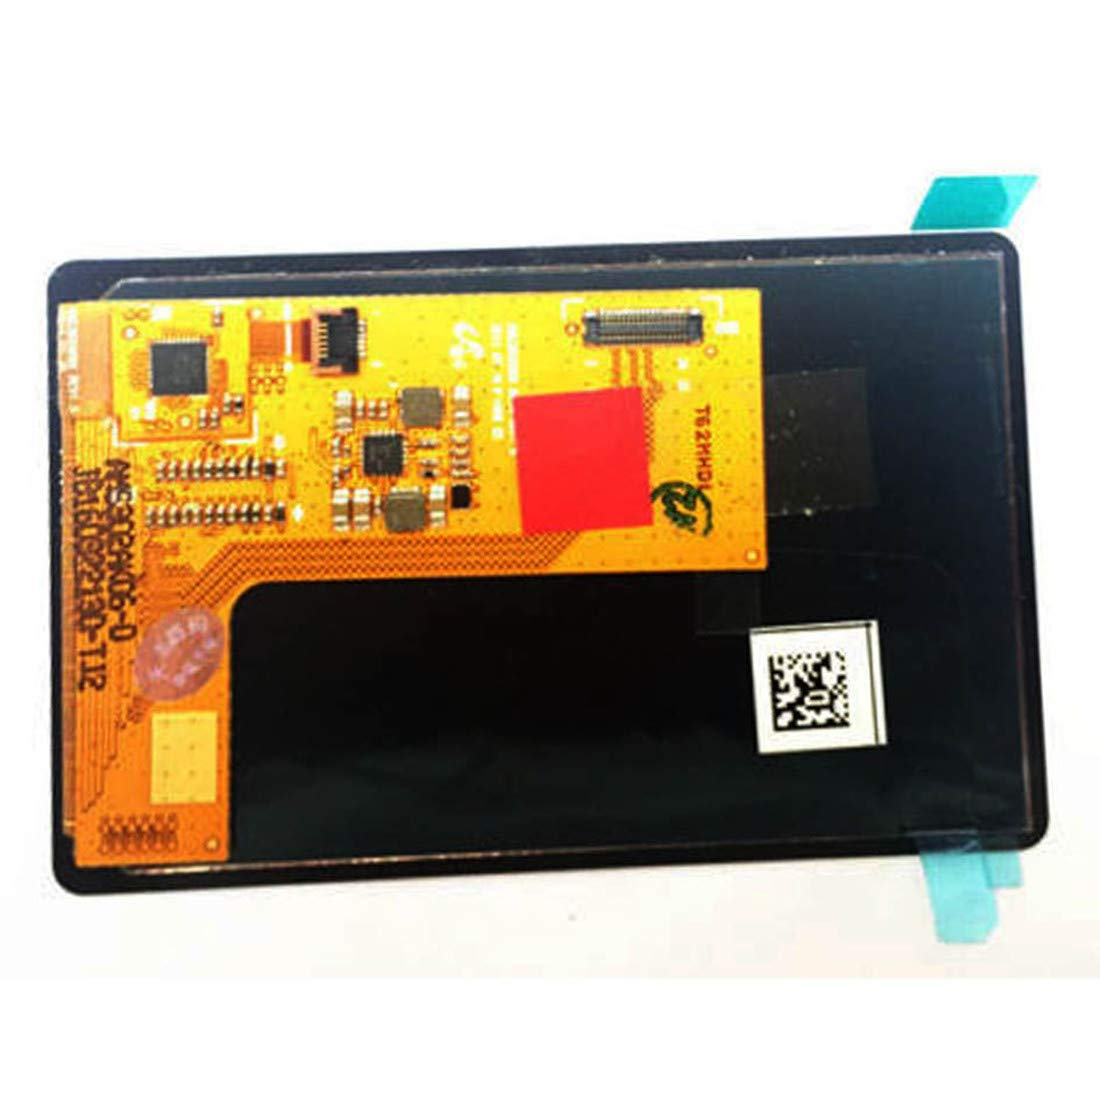 Replacement New Camera LCD Display Screen Monitor for Samsung NX500 NX1 by mEOZIADao (Image #2)